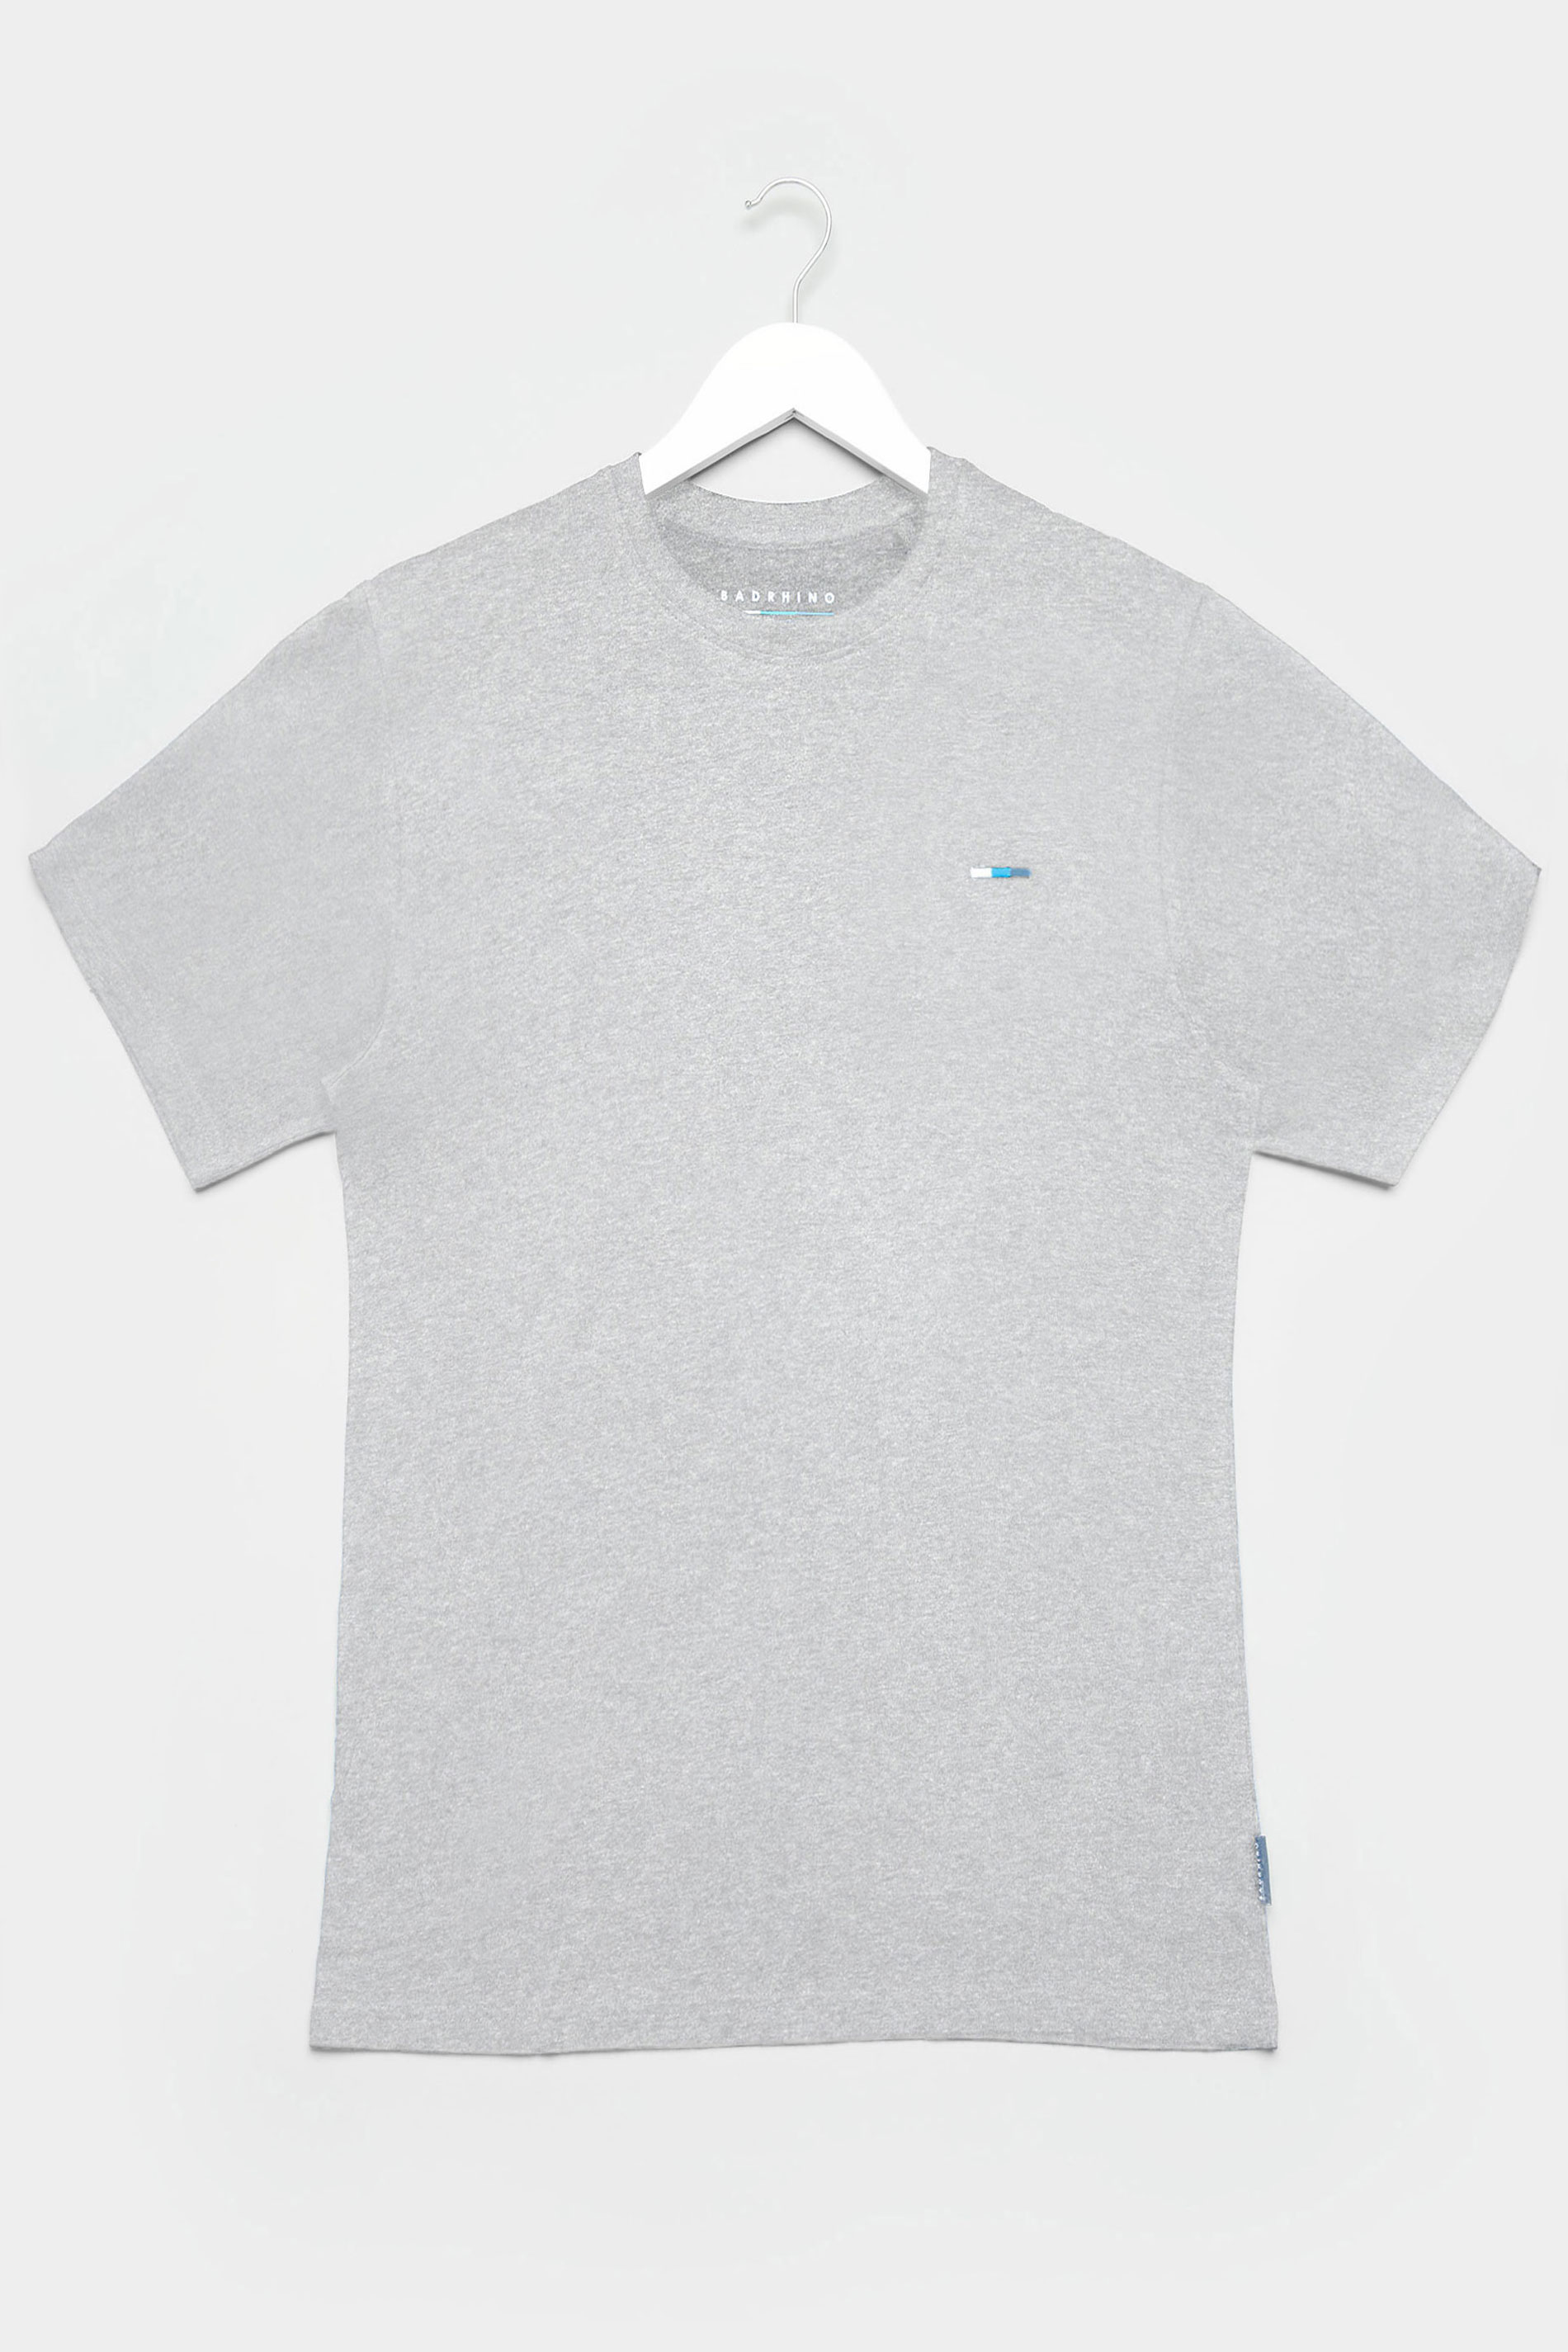 BadRhino Grey Marl Plain T-Shirt